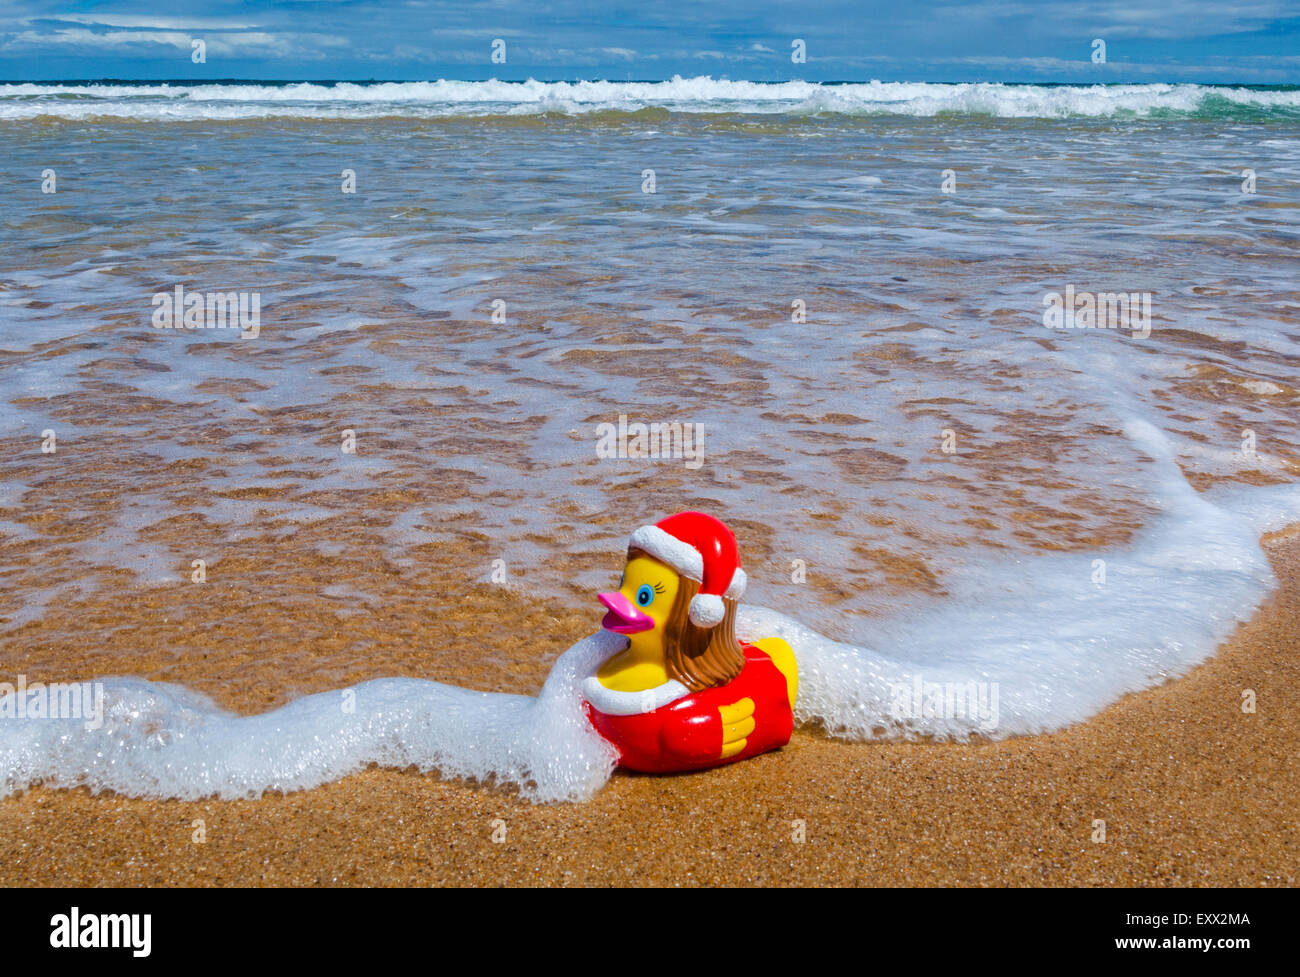 Southern hemisphere summer christmas, xmas rubber duck at Putty Beach, Central Coast, New South Wales, Australia - Stock Image